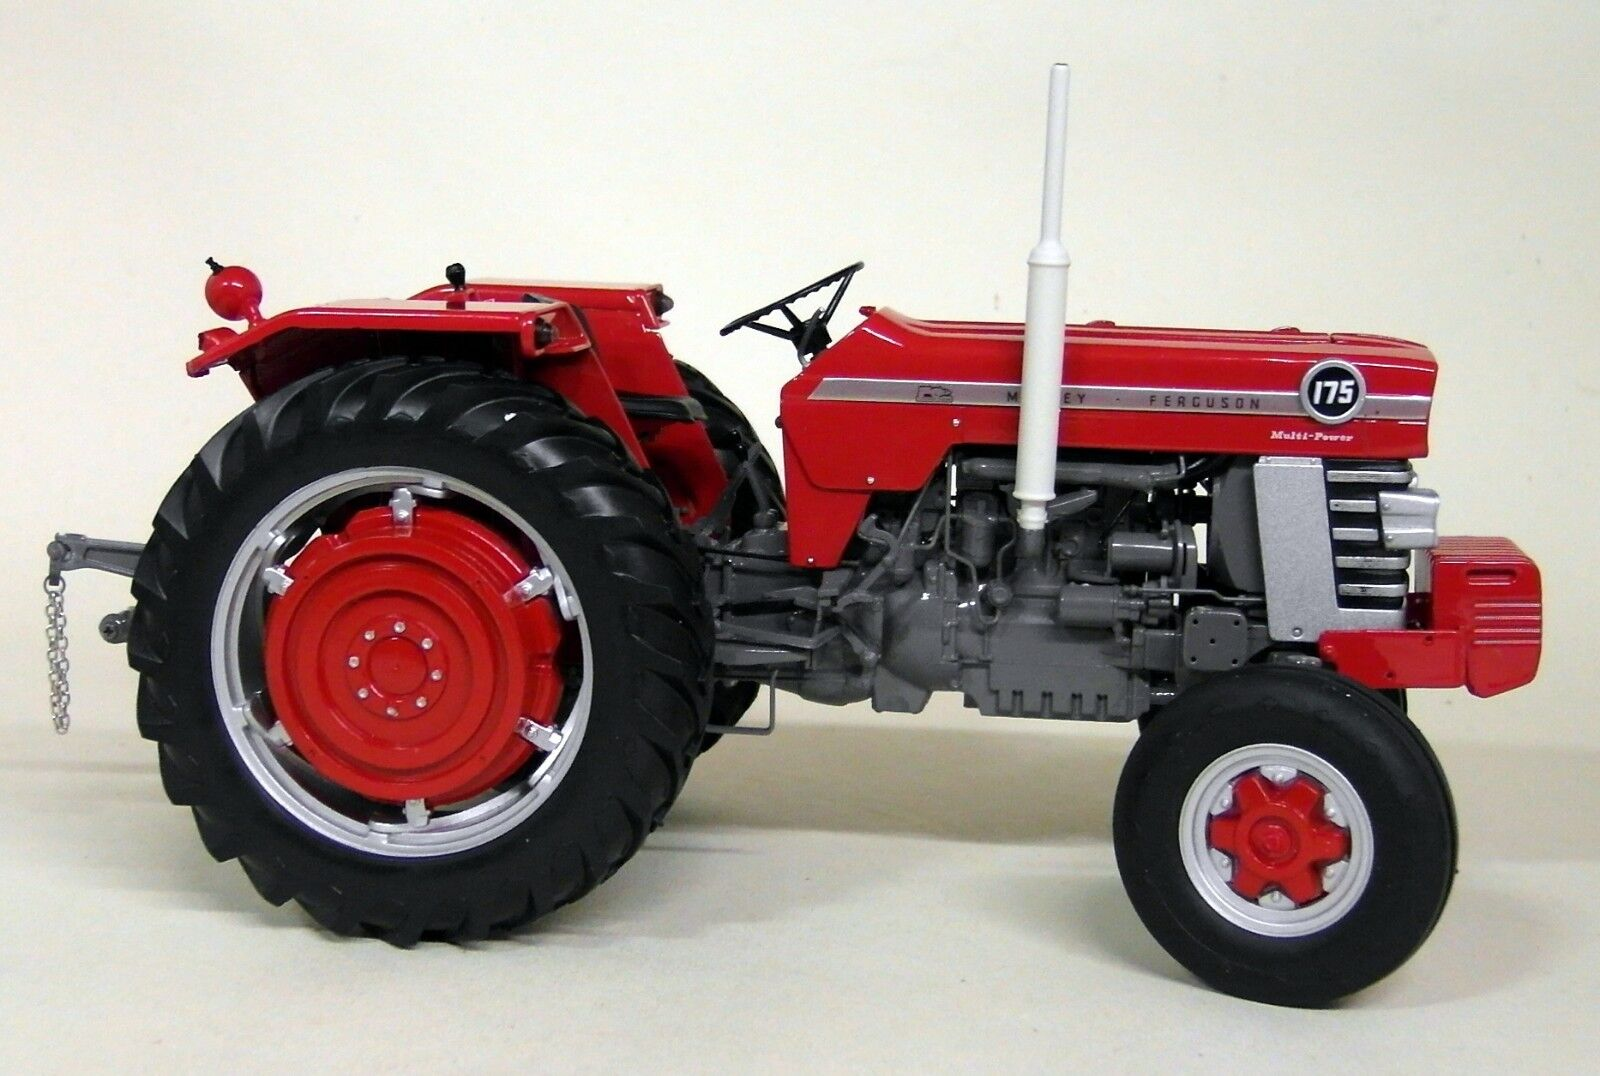 UH 1 16 Scale 2906 Massey Ferguson 175 Red Vintage diecast model Tractor